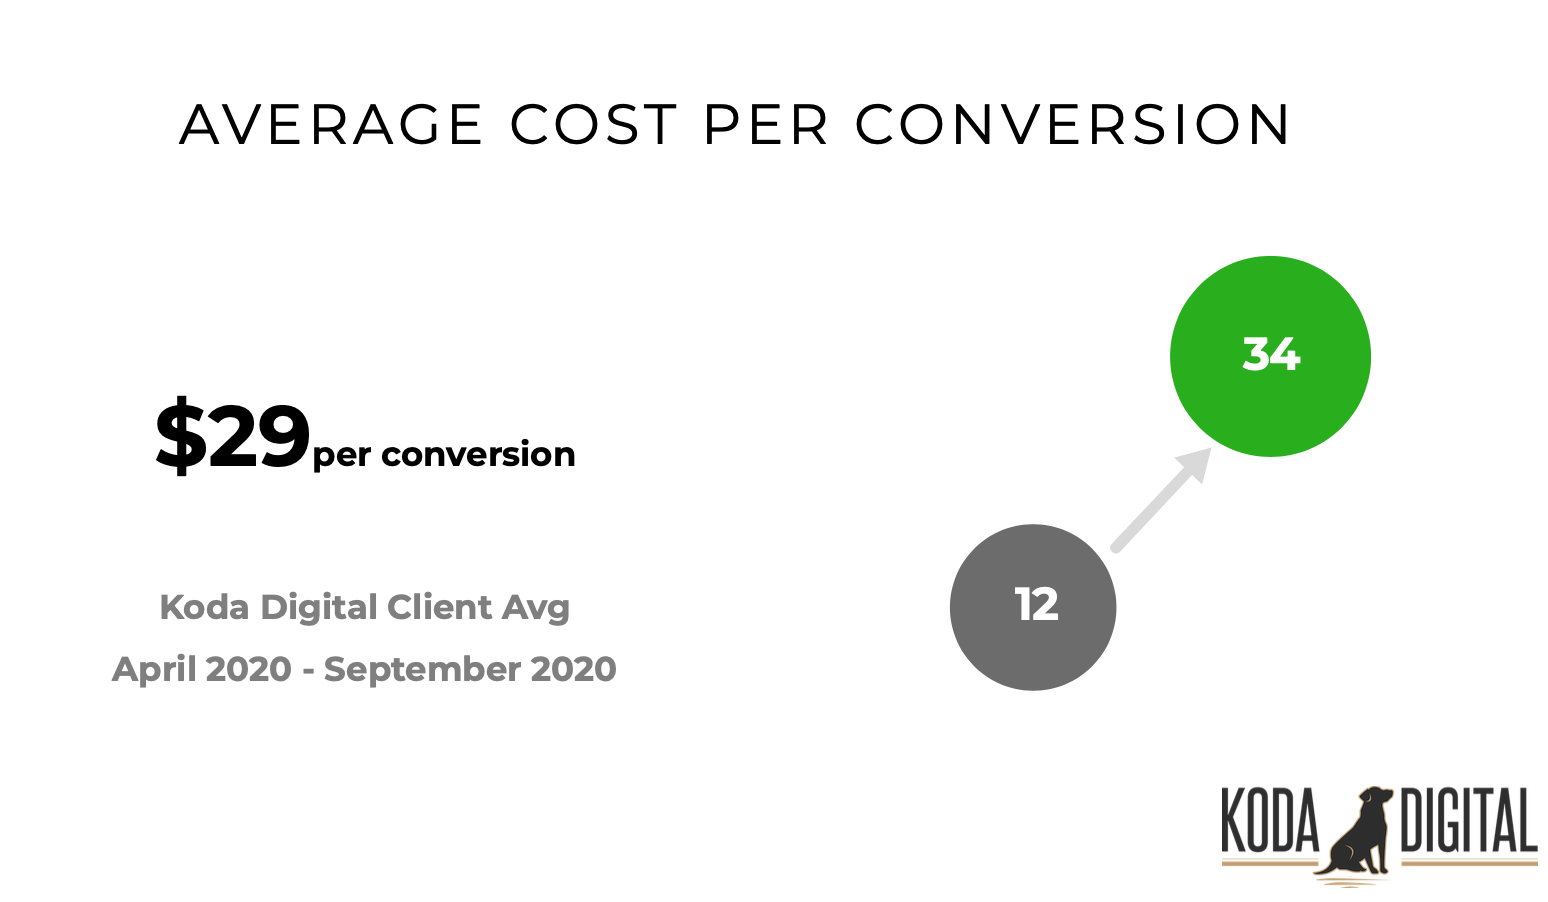 Image showing Koda Digital's client's average increase in patients per month of 24 new patients added at an $29 each.